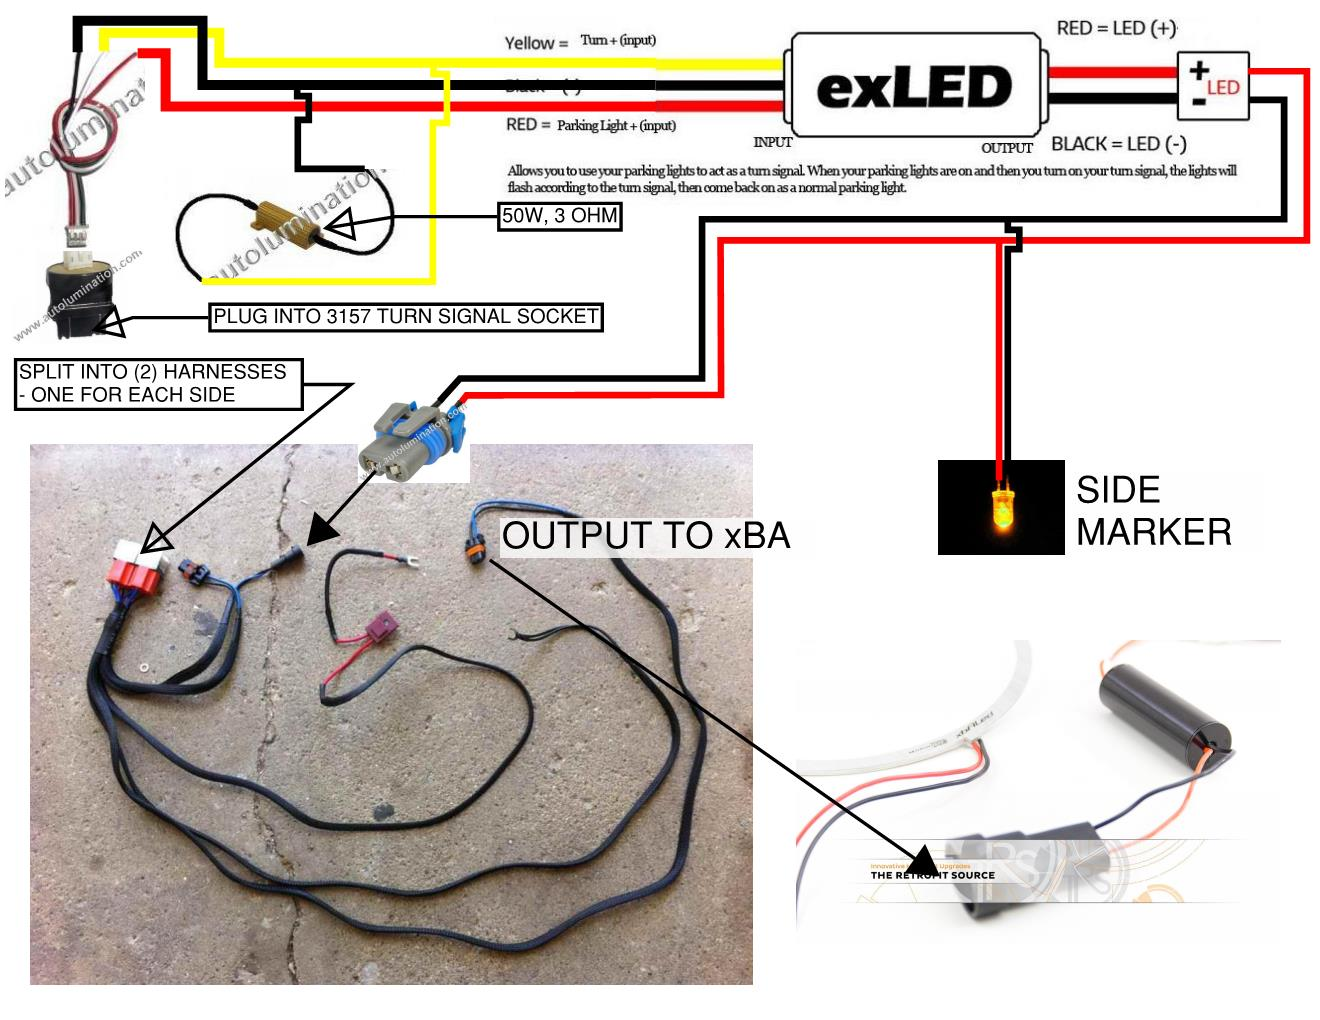 led turn signal schematic  led  free engine image for user manual download